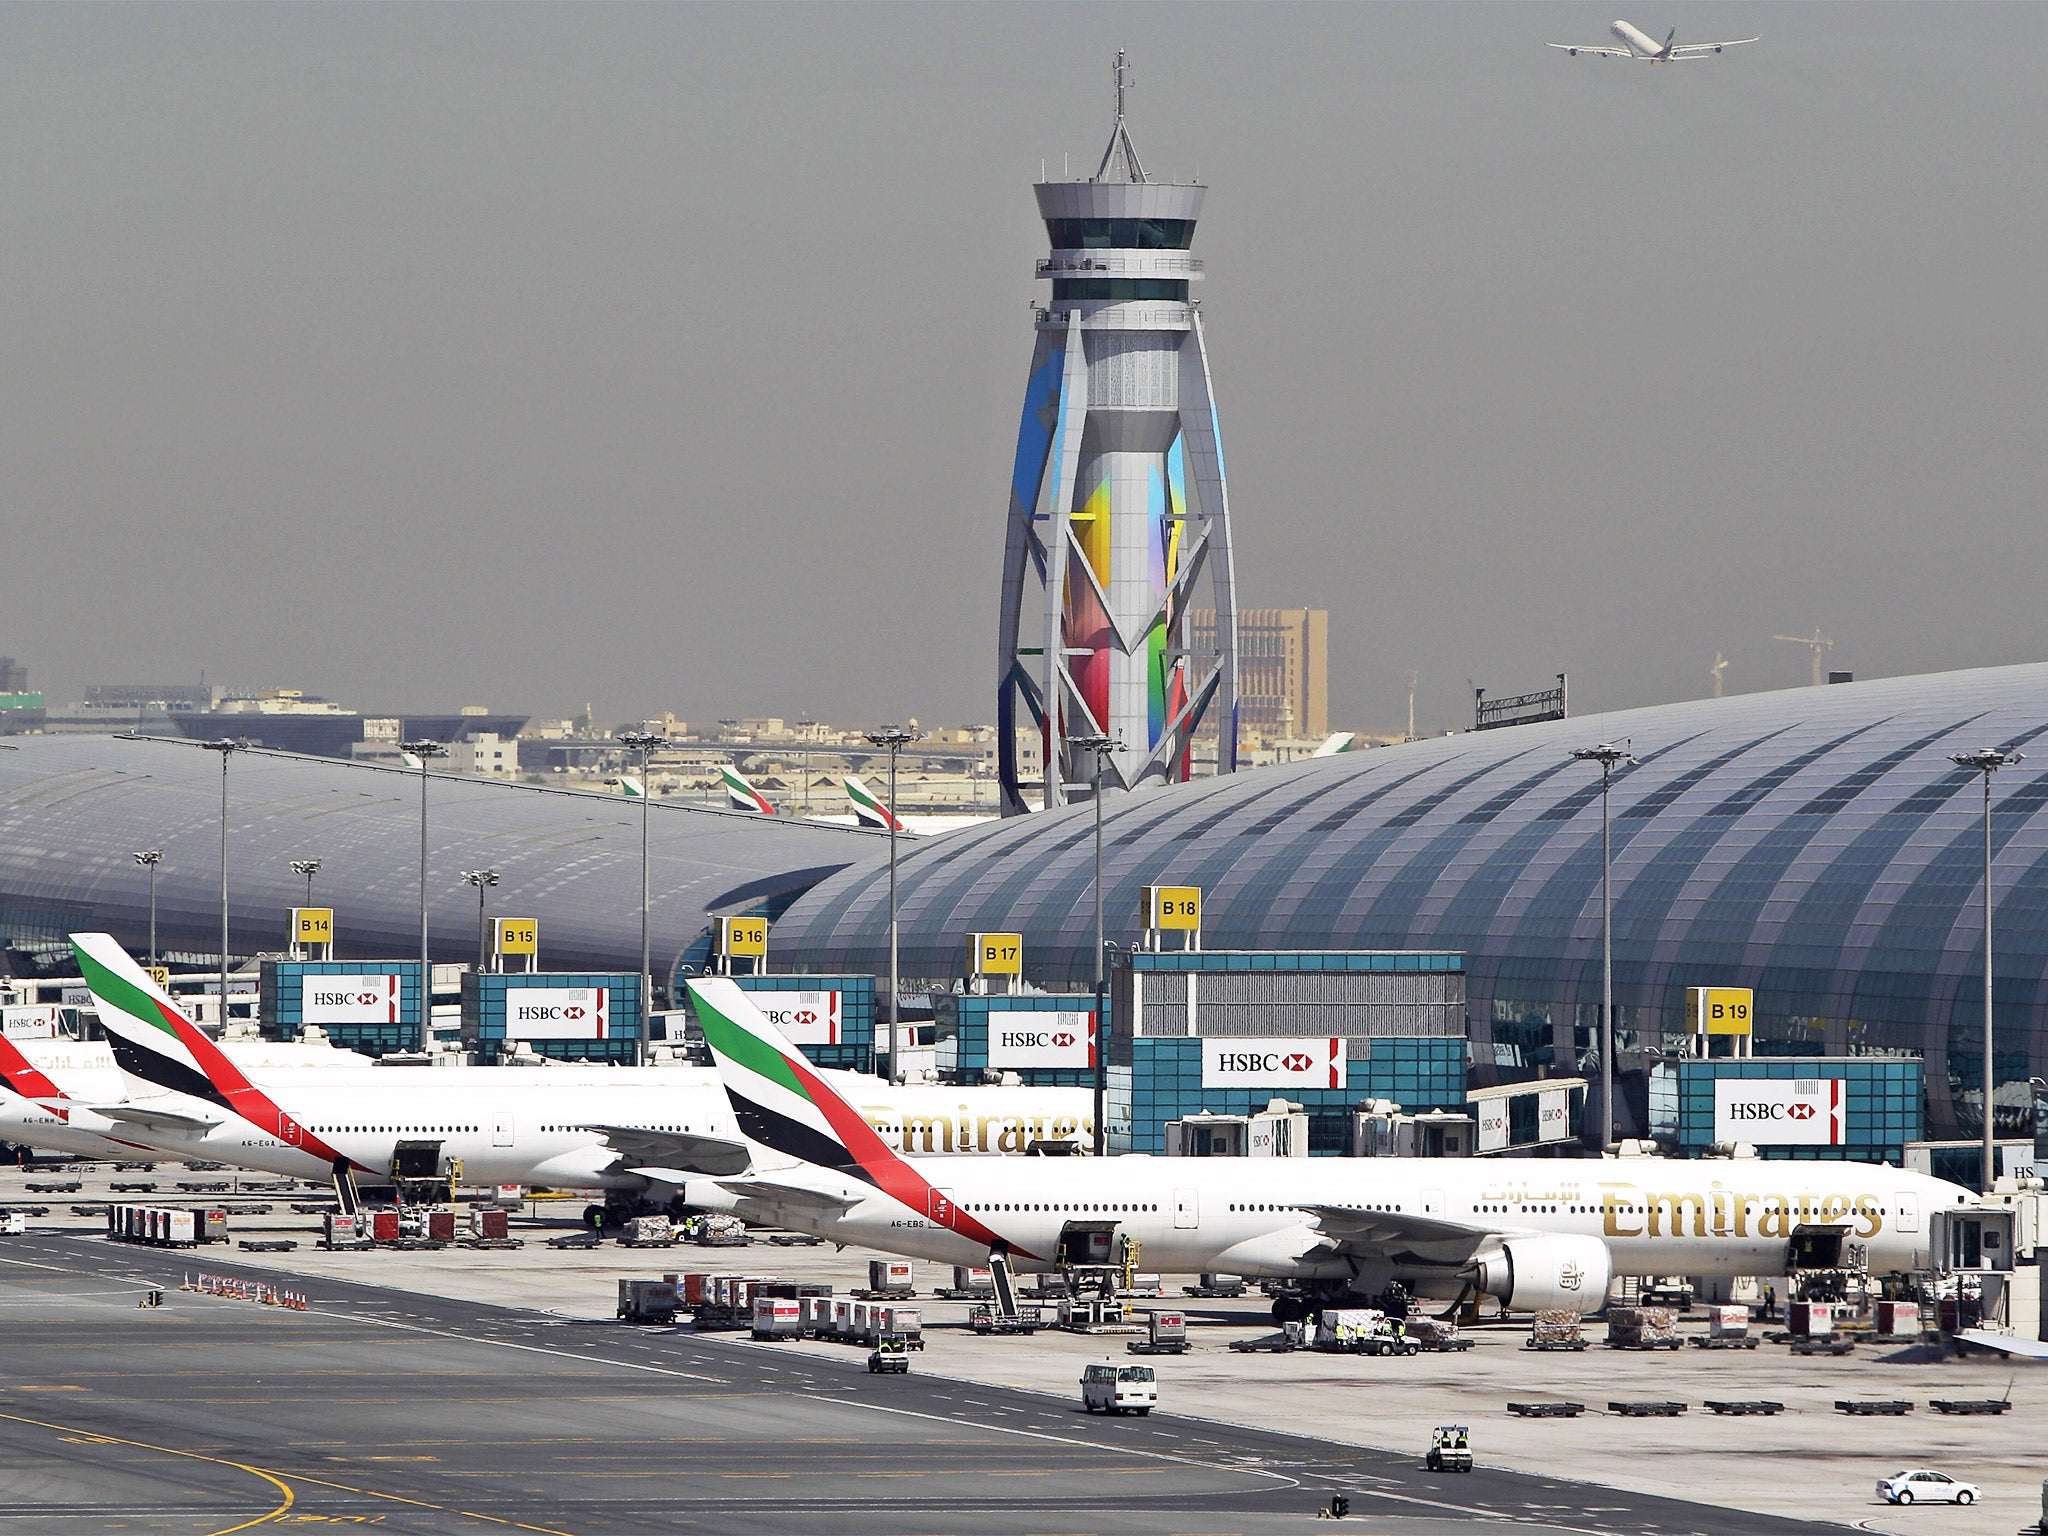 Escritura jefe Momento  Flights at Dubai airport grounded due to drone attack | The Independent |  The Independent